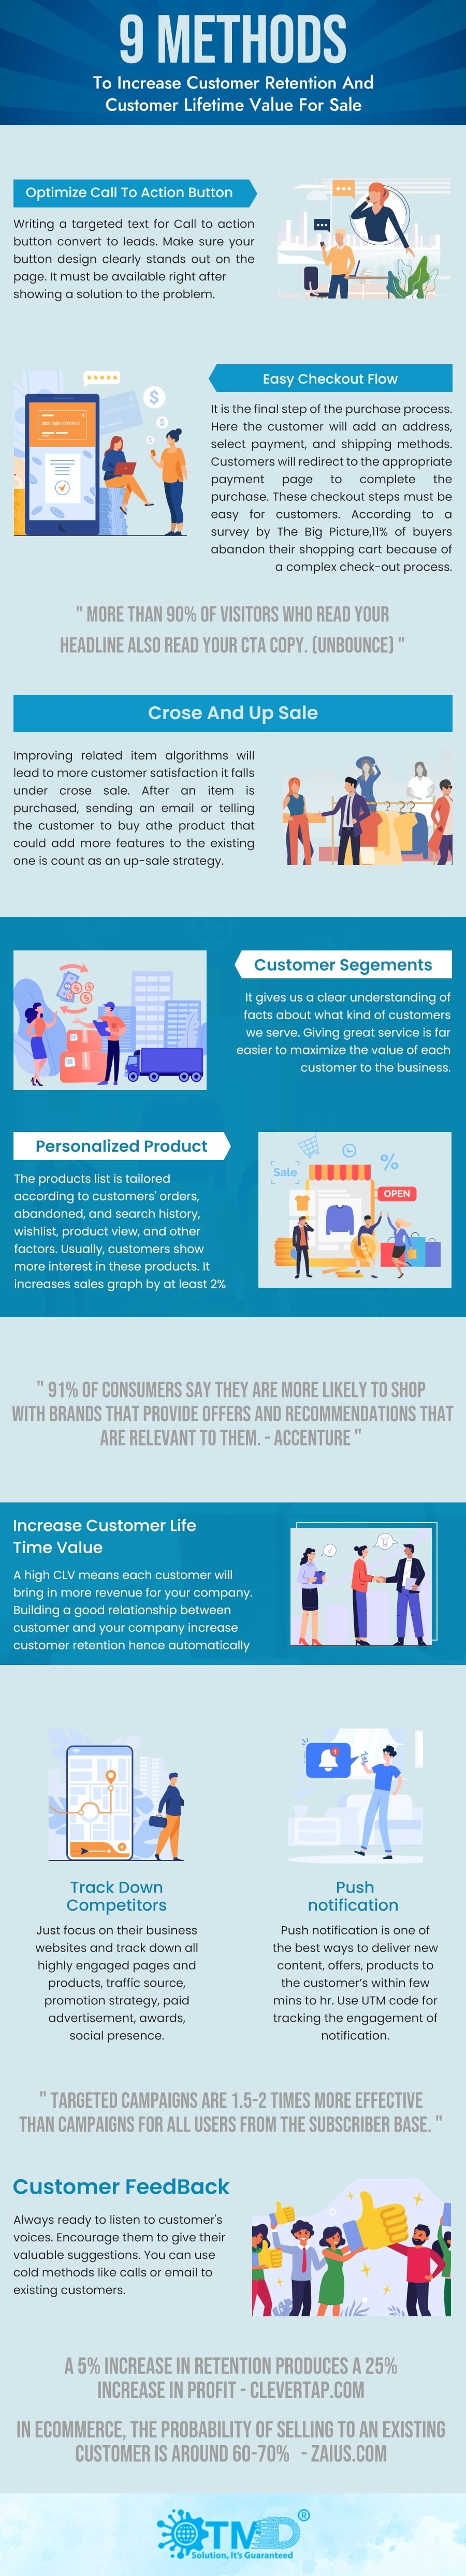 7 methods to improve ecommerce business growth by ThinkWithGoogle